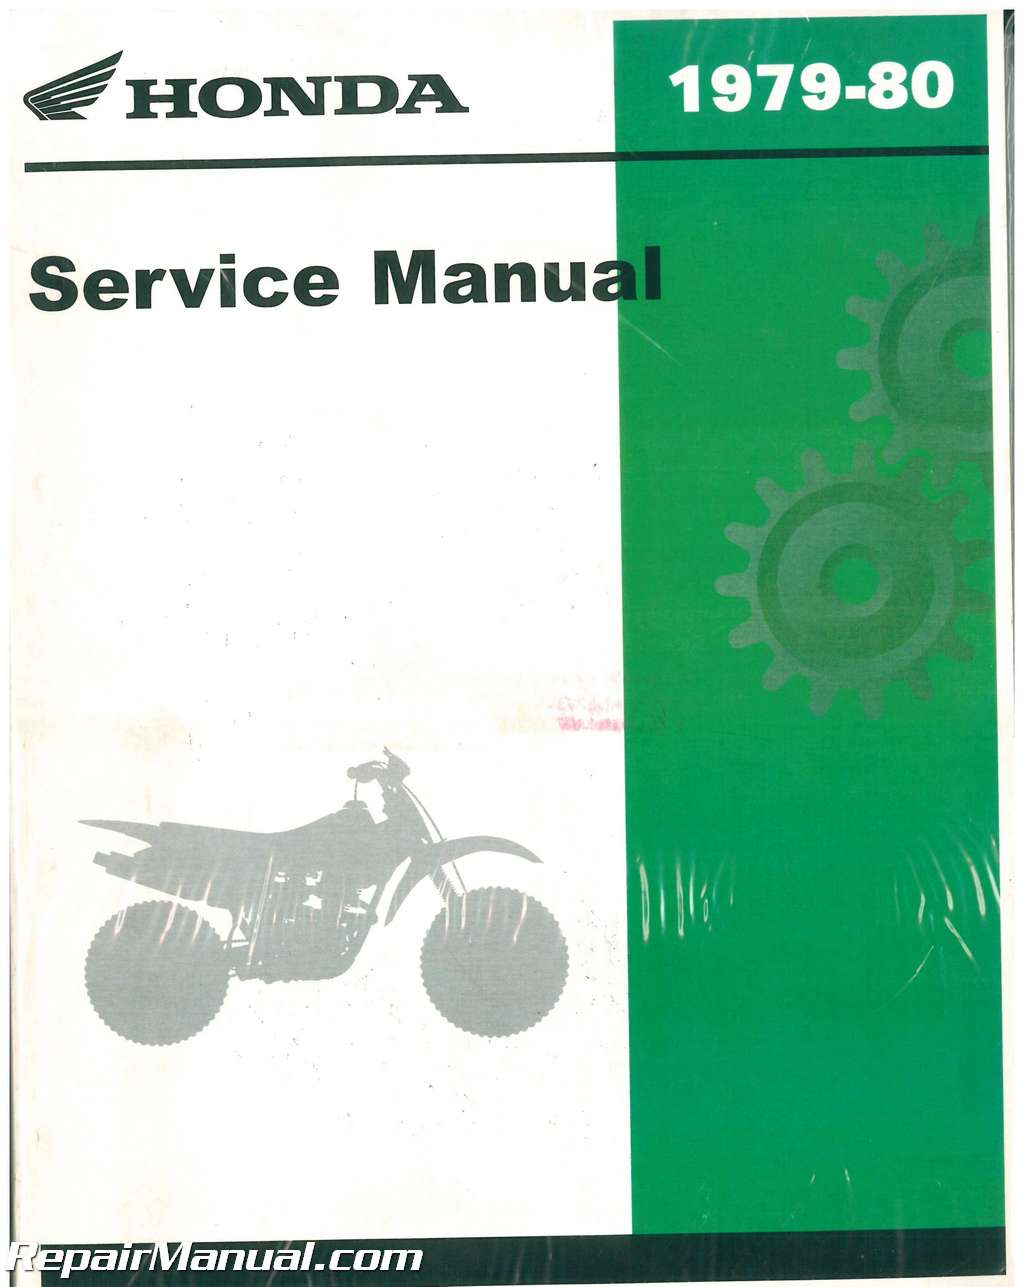 1979-1980-Honda-XR500R-Motorcycle-Service-Manual_001.jpg ...